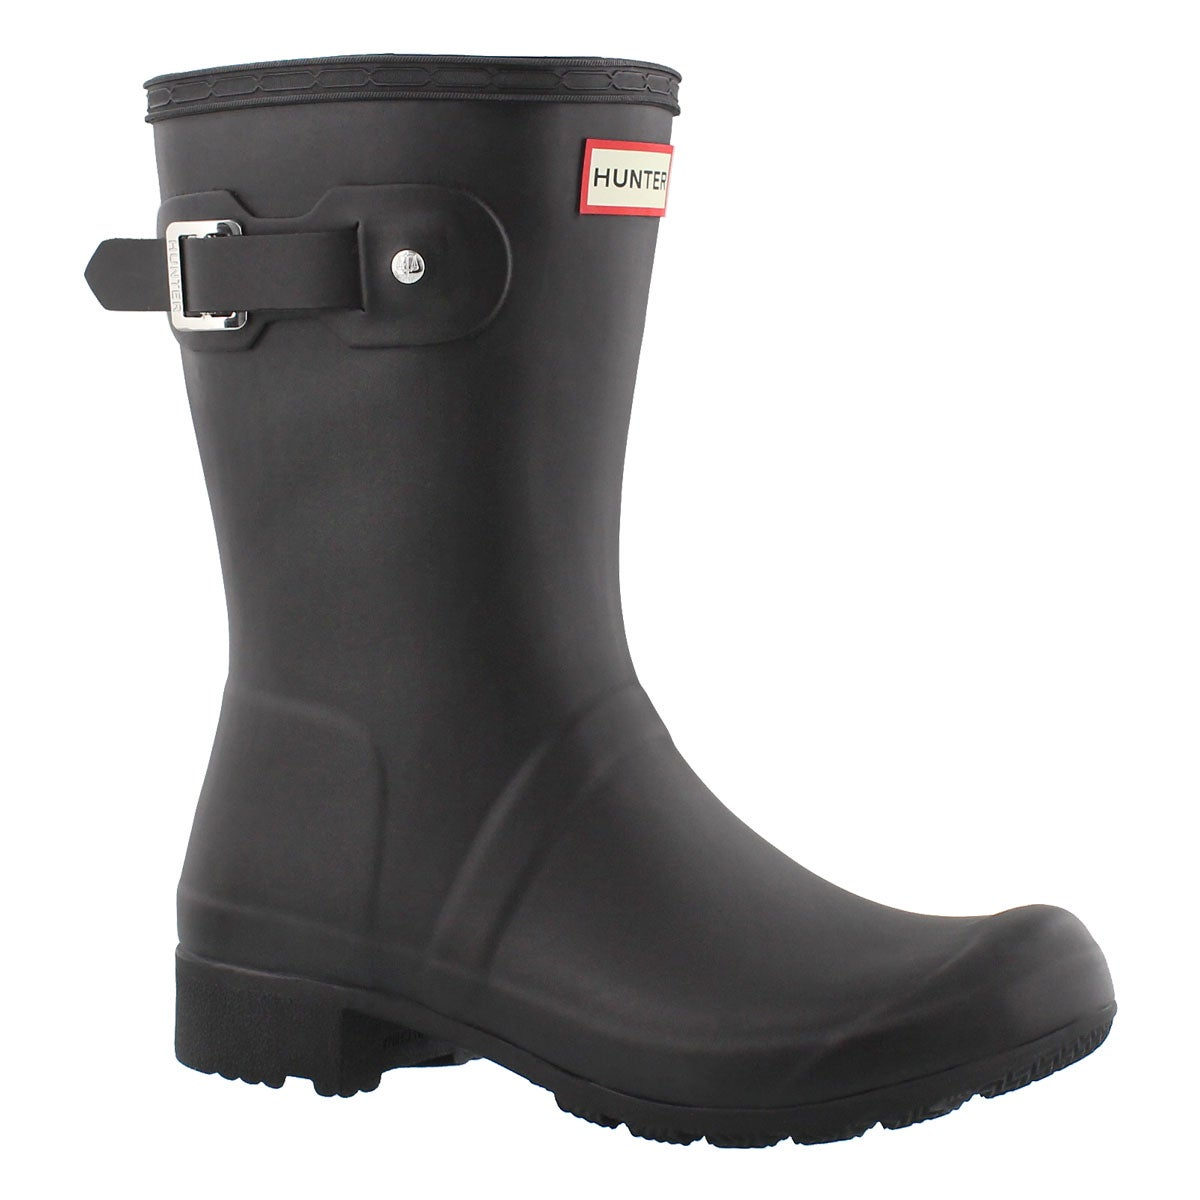 Lds Original Tour Short blk rain boot